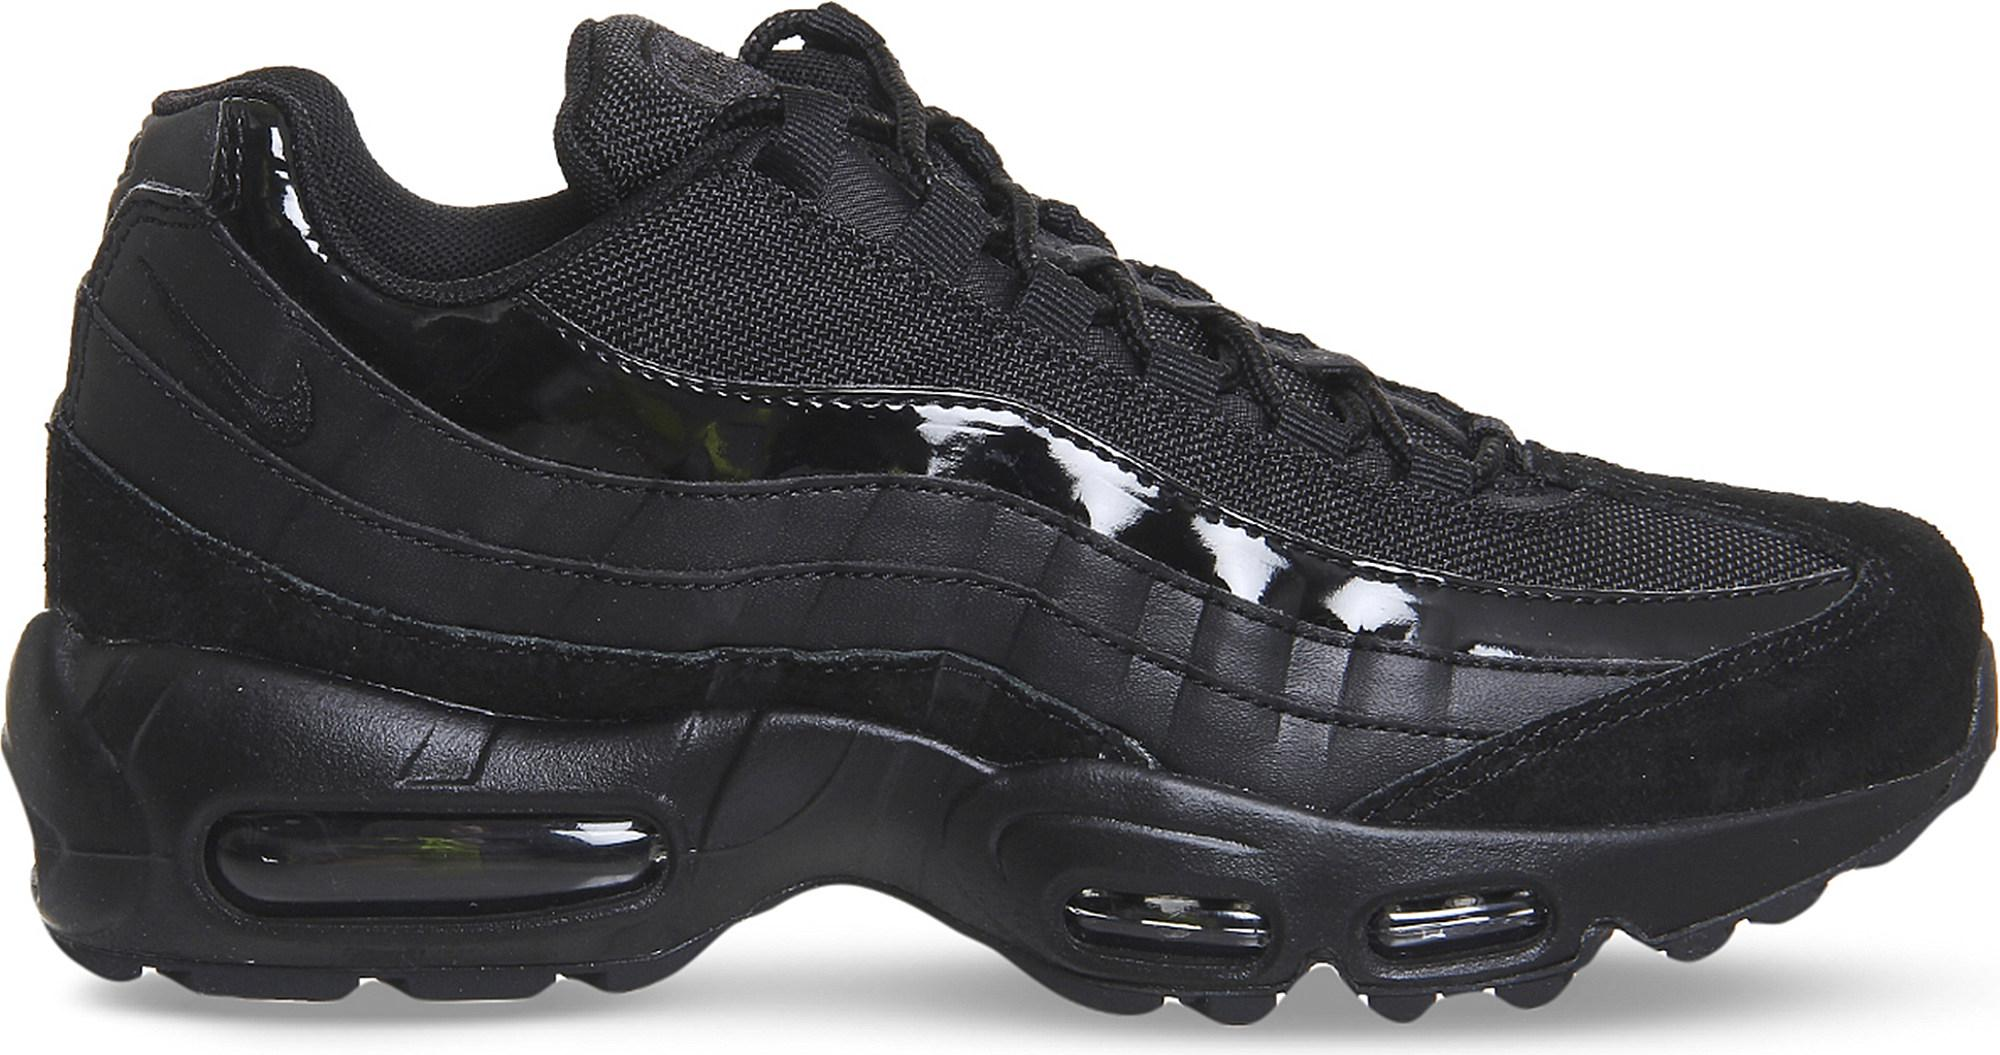 1235dff14d Nike Air Max 95 Leather And Mesh Trainers in Black for Men - Lyst